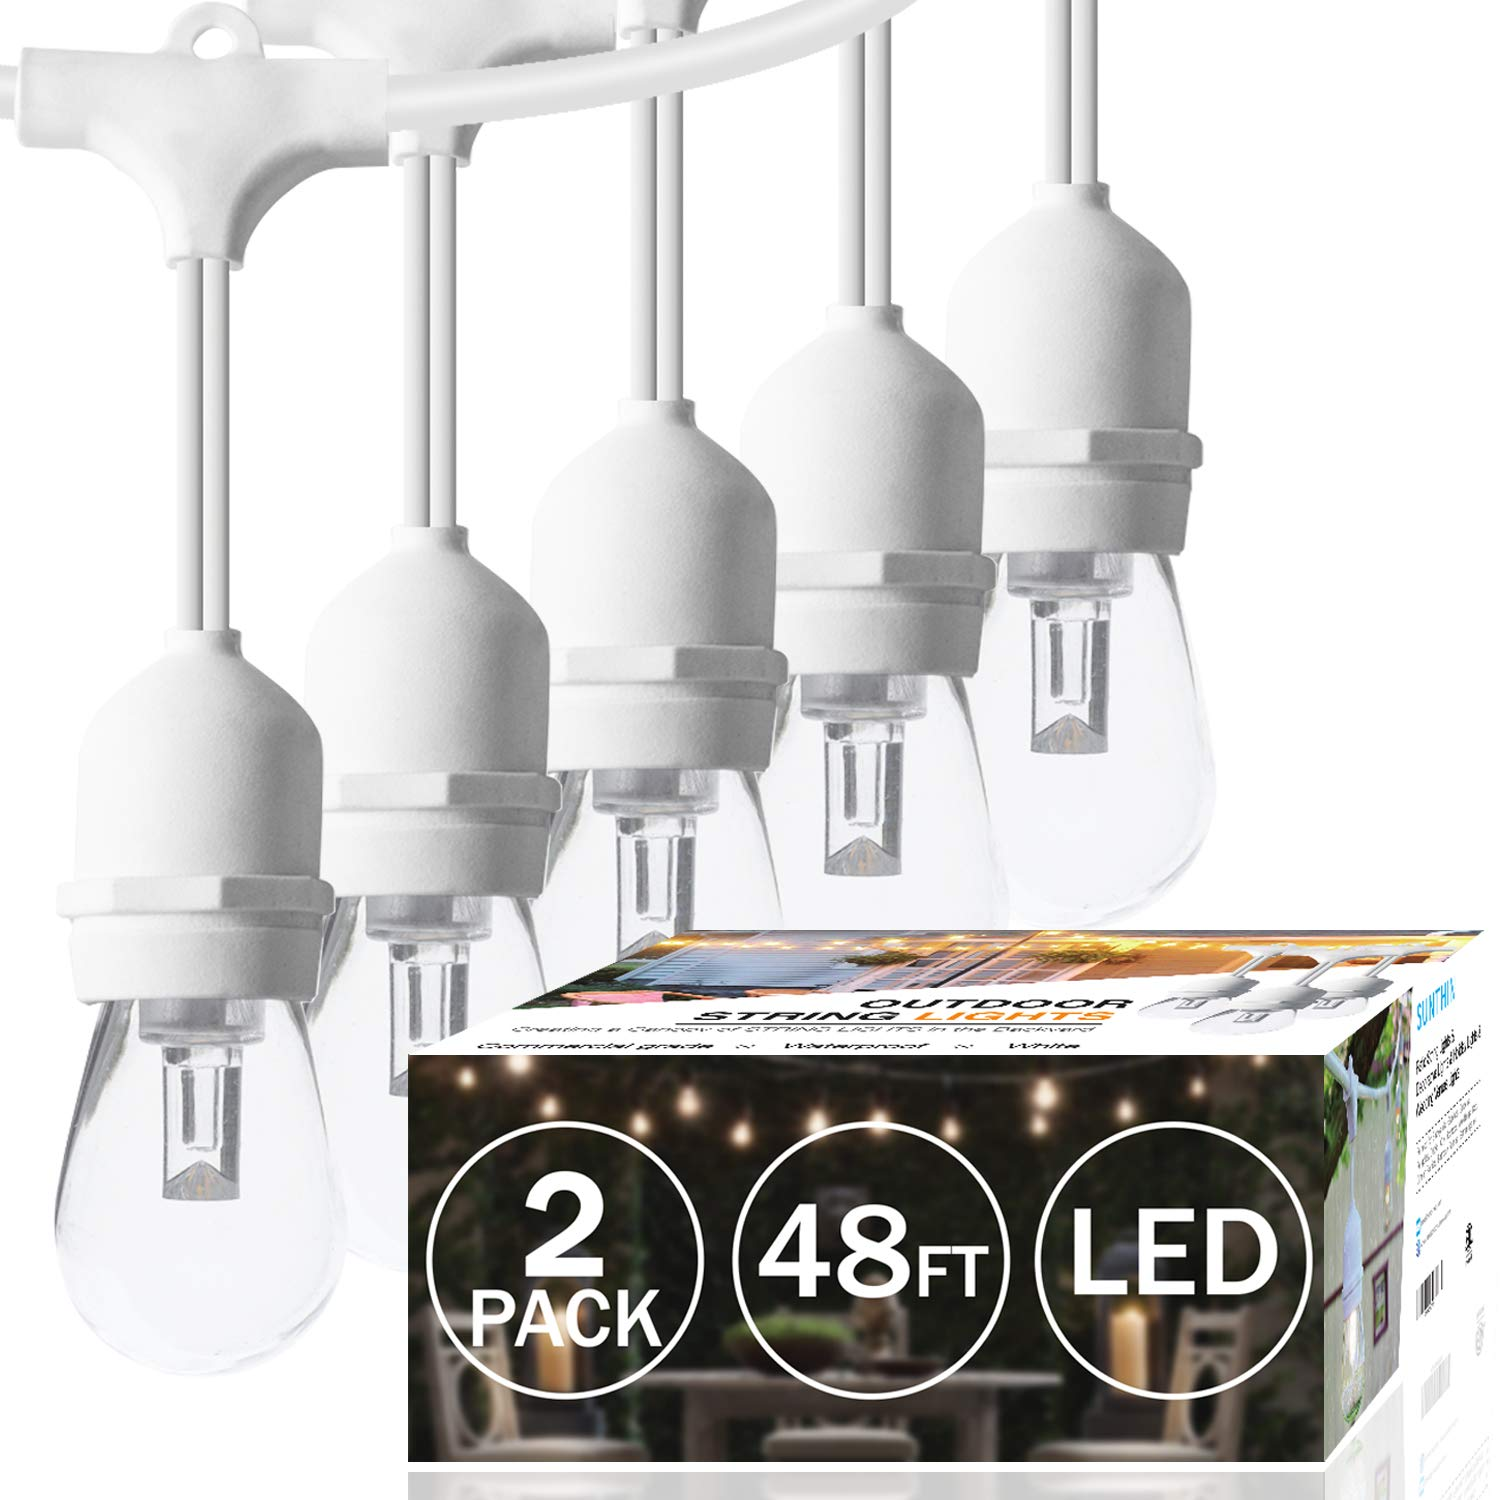 SUNTHIN Pack of 2 48ft LED Outdoor String Lights Patio Lights with White Cord 15 E26 Sockets 0.9 Watt 18 S14 Edison Bulbs 3 Spares Hanging Light Waterproof Wedding String Lighting by SUNTHIN